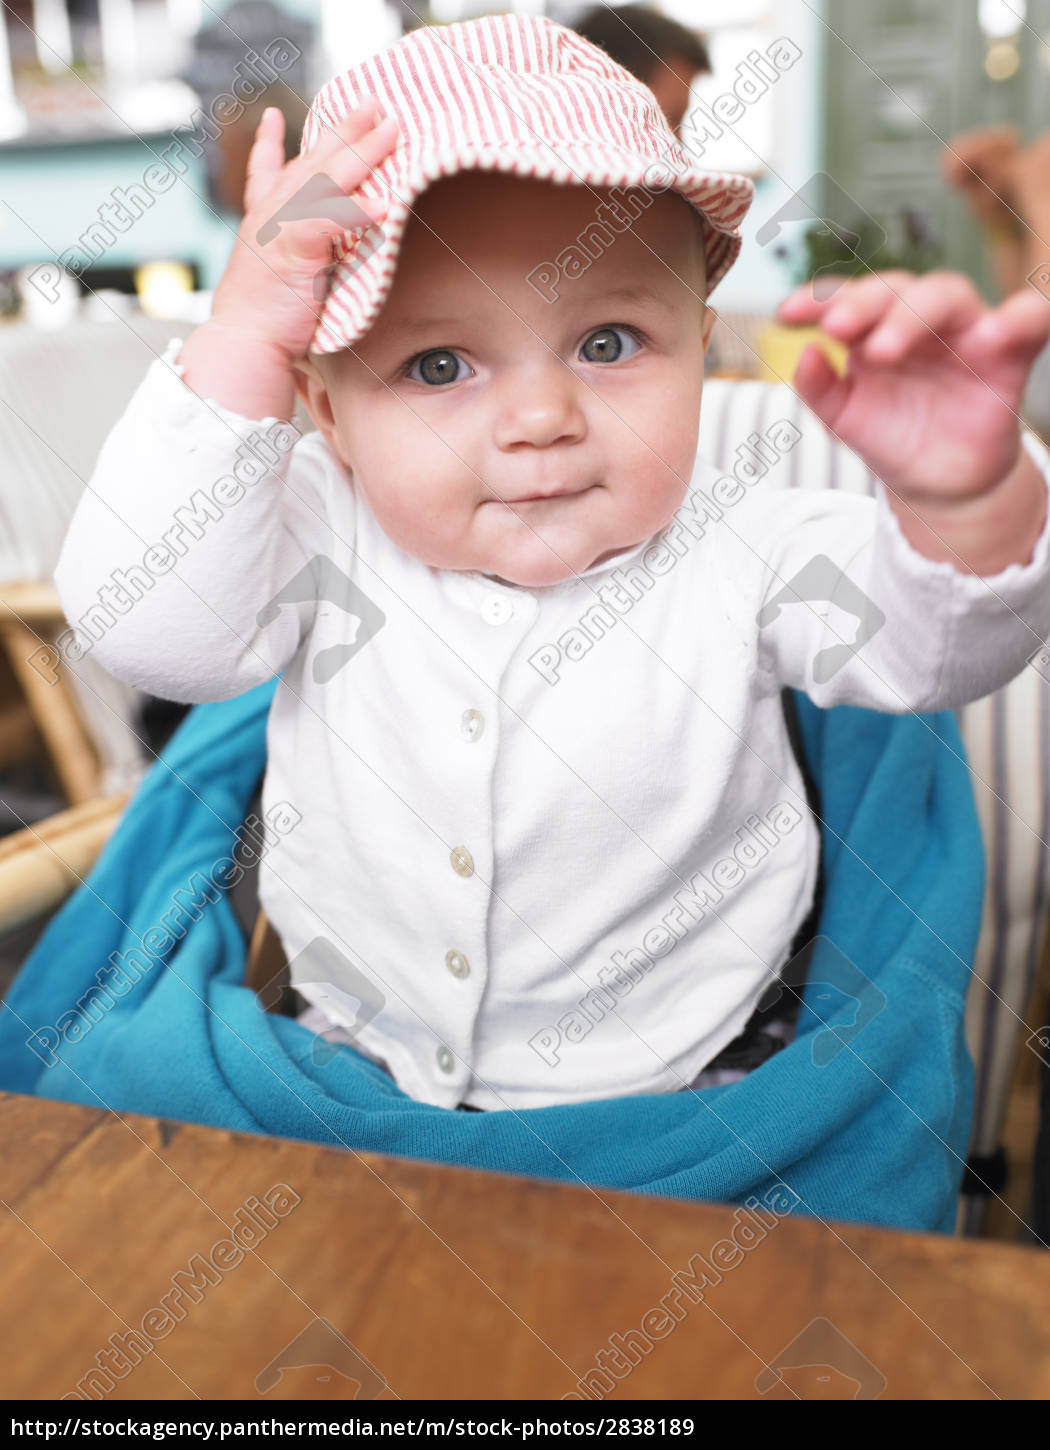 baby, at, table, in, restaurant - 2838189